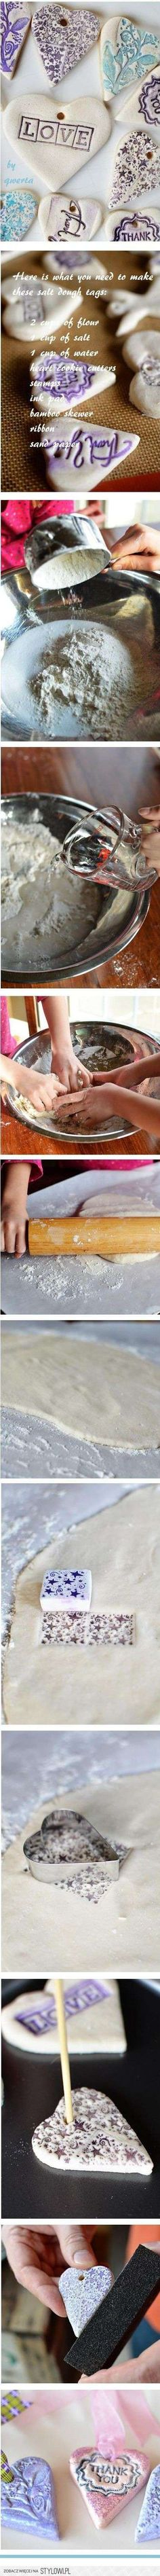 14 Random DIY Ideas Which Can Make Your Life Easier - Stamped salt dough